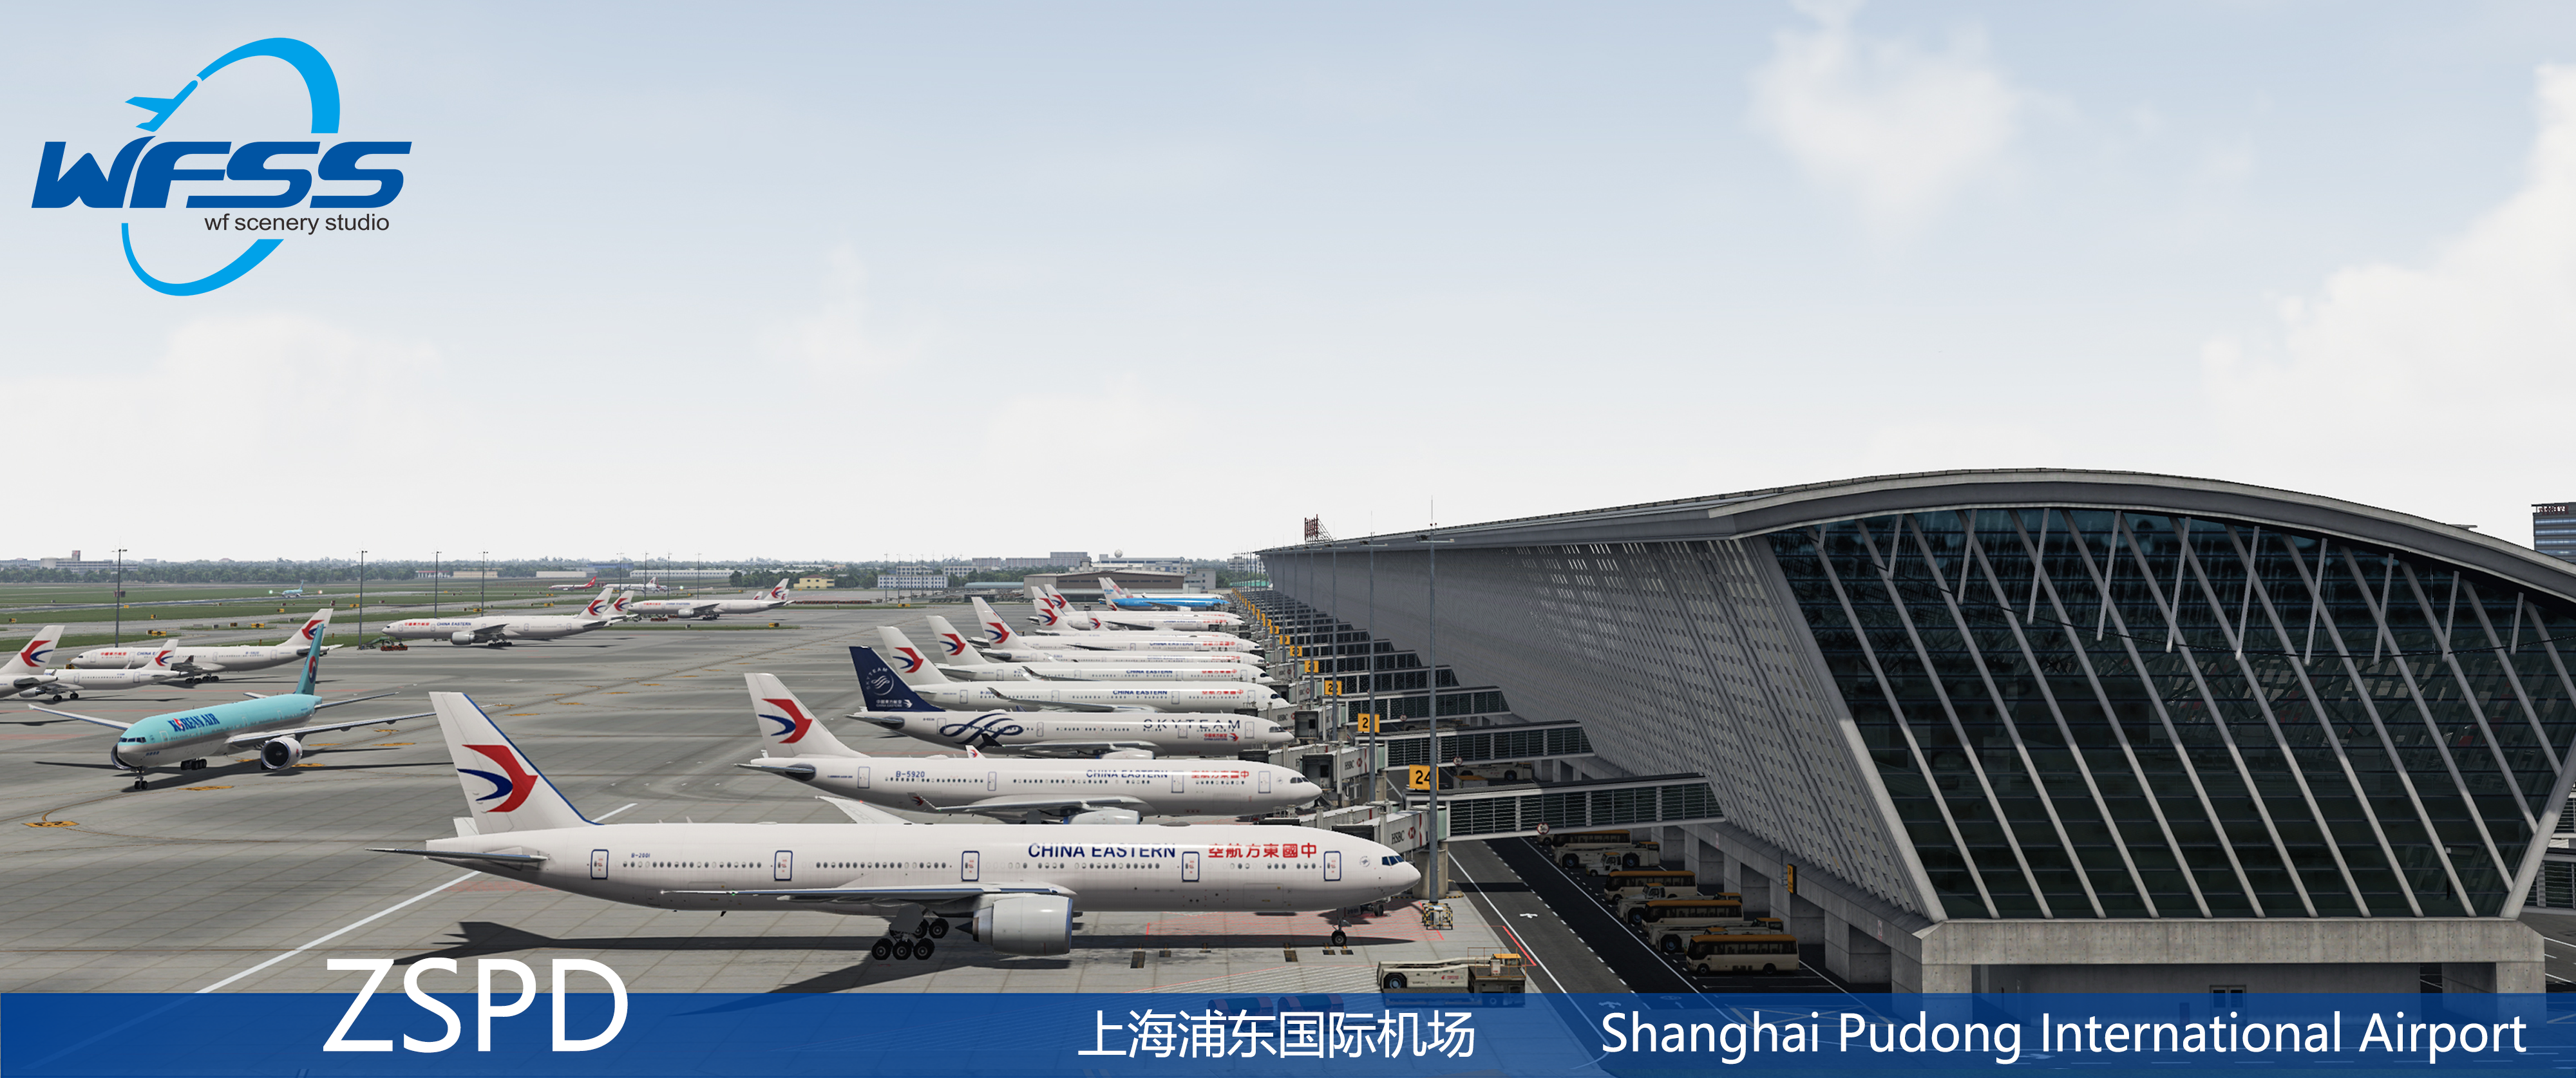 WF SCENERY STUDIO - SHANGHAI PUDONG INTERNATIONAL AIRPORT ZSPD P3D4.5-5